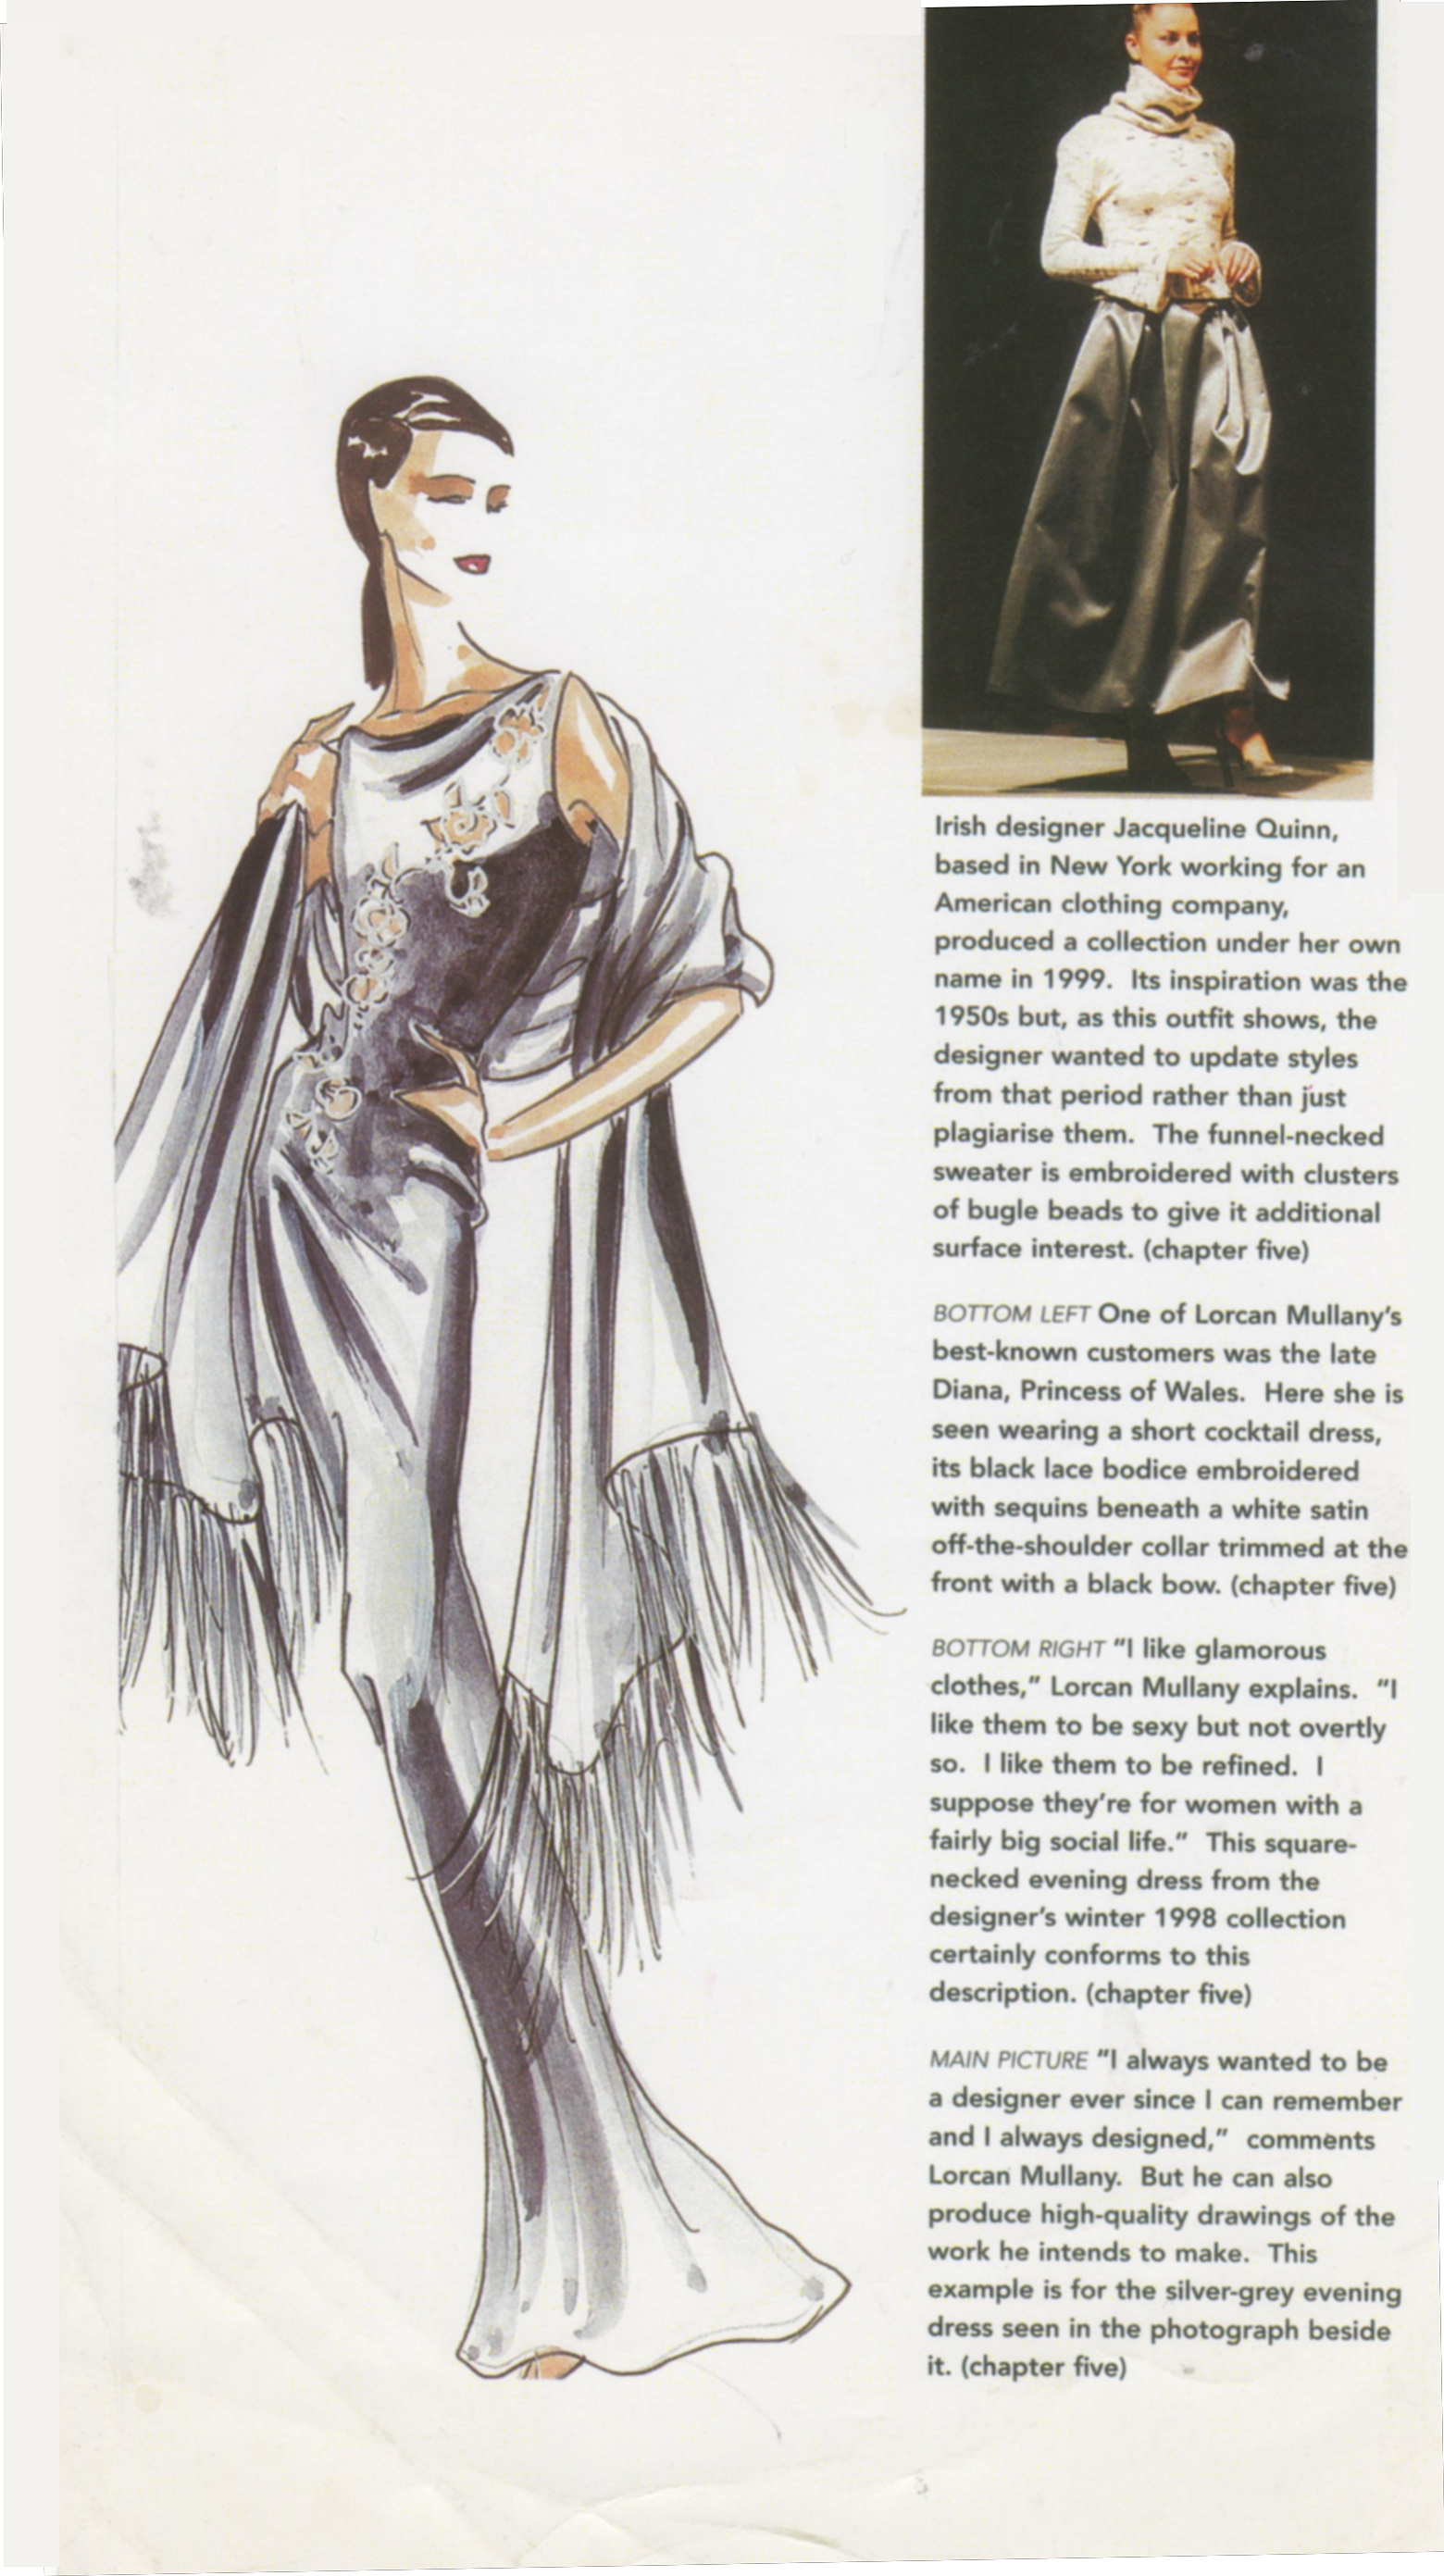 "JACQUELINE QUINN FEATURED IN THE BOOK ""AFTER A FASHION"" BY ROBERT BYRNE"